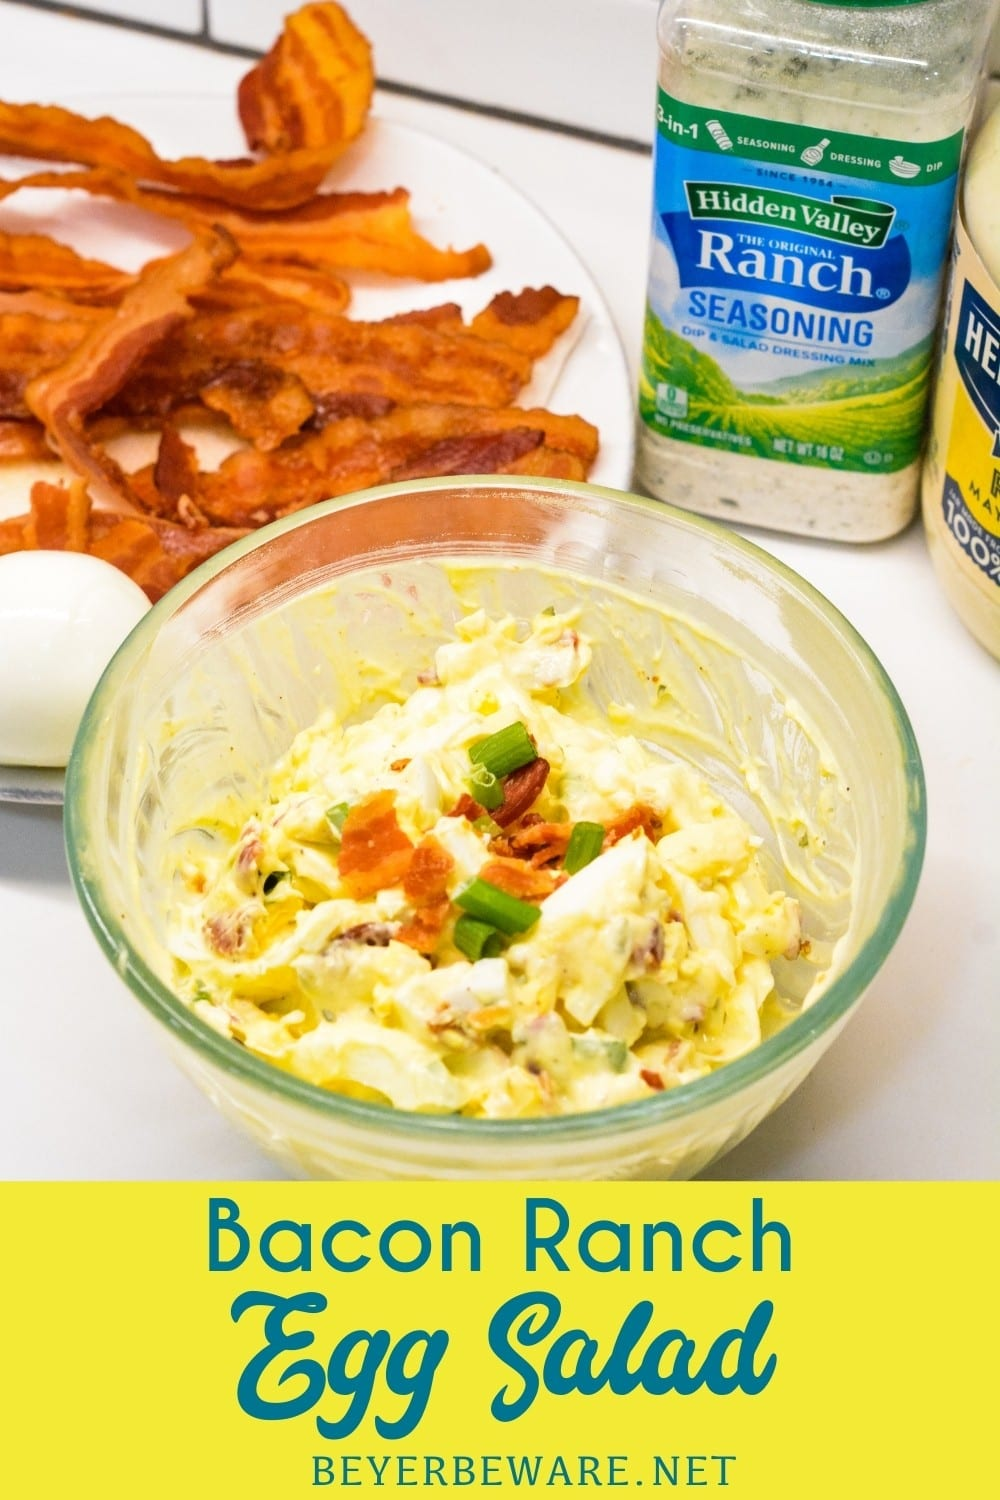 Bacon Ranch Egg Salad is a low-carb and keto egg salad recipe made with base ingredients of hard-boiled eggs, bacon, mayonnaise, and ranch seasoning and can be doctored up with the addition of items like green onions, cheese, and avocados.